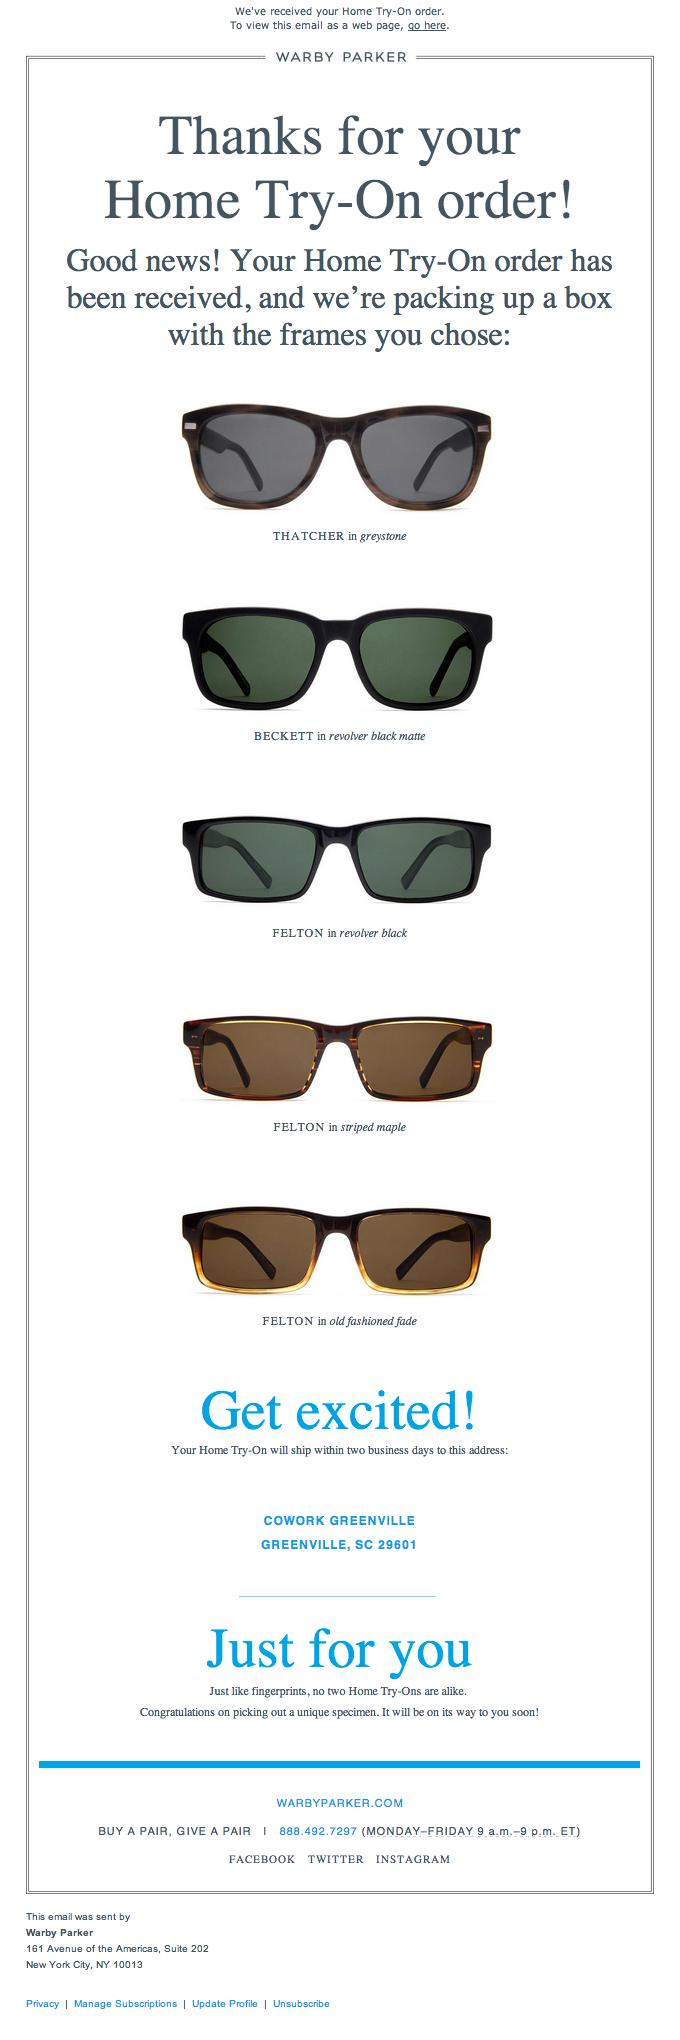 a thank you email by Warby Parker to its customers